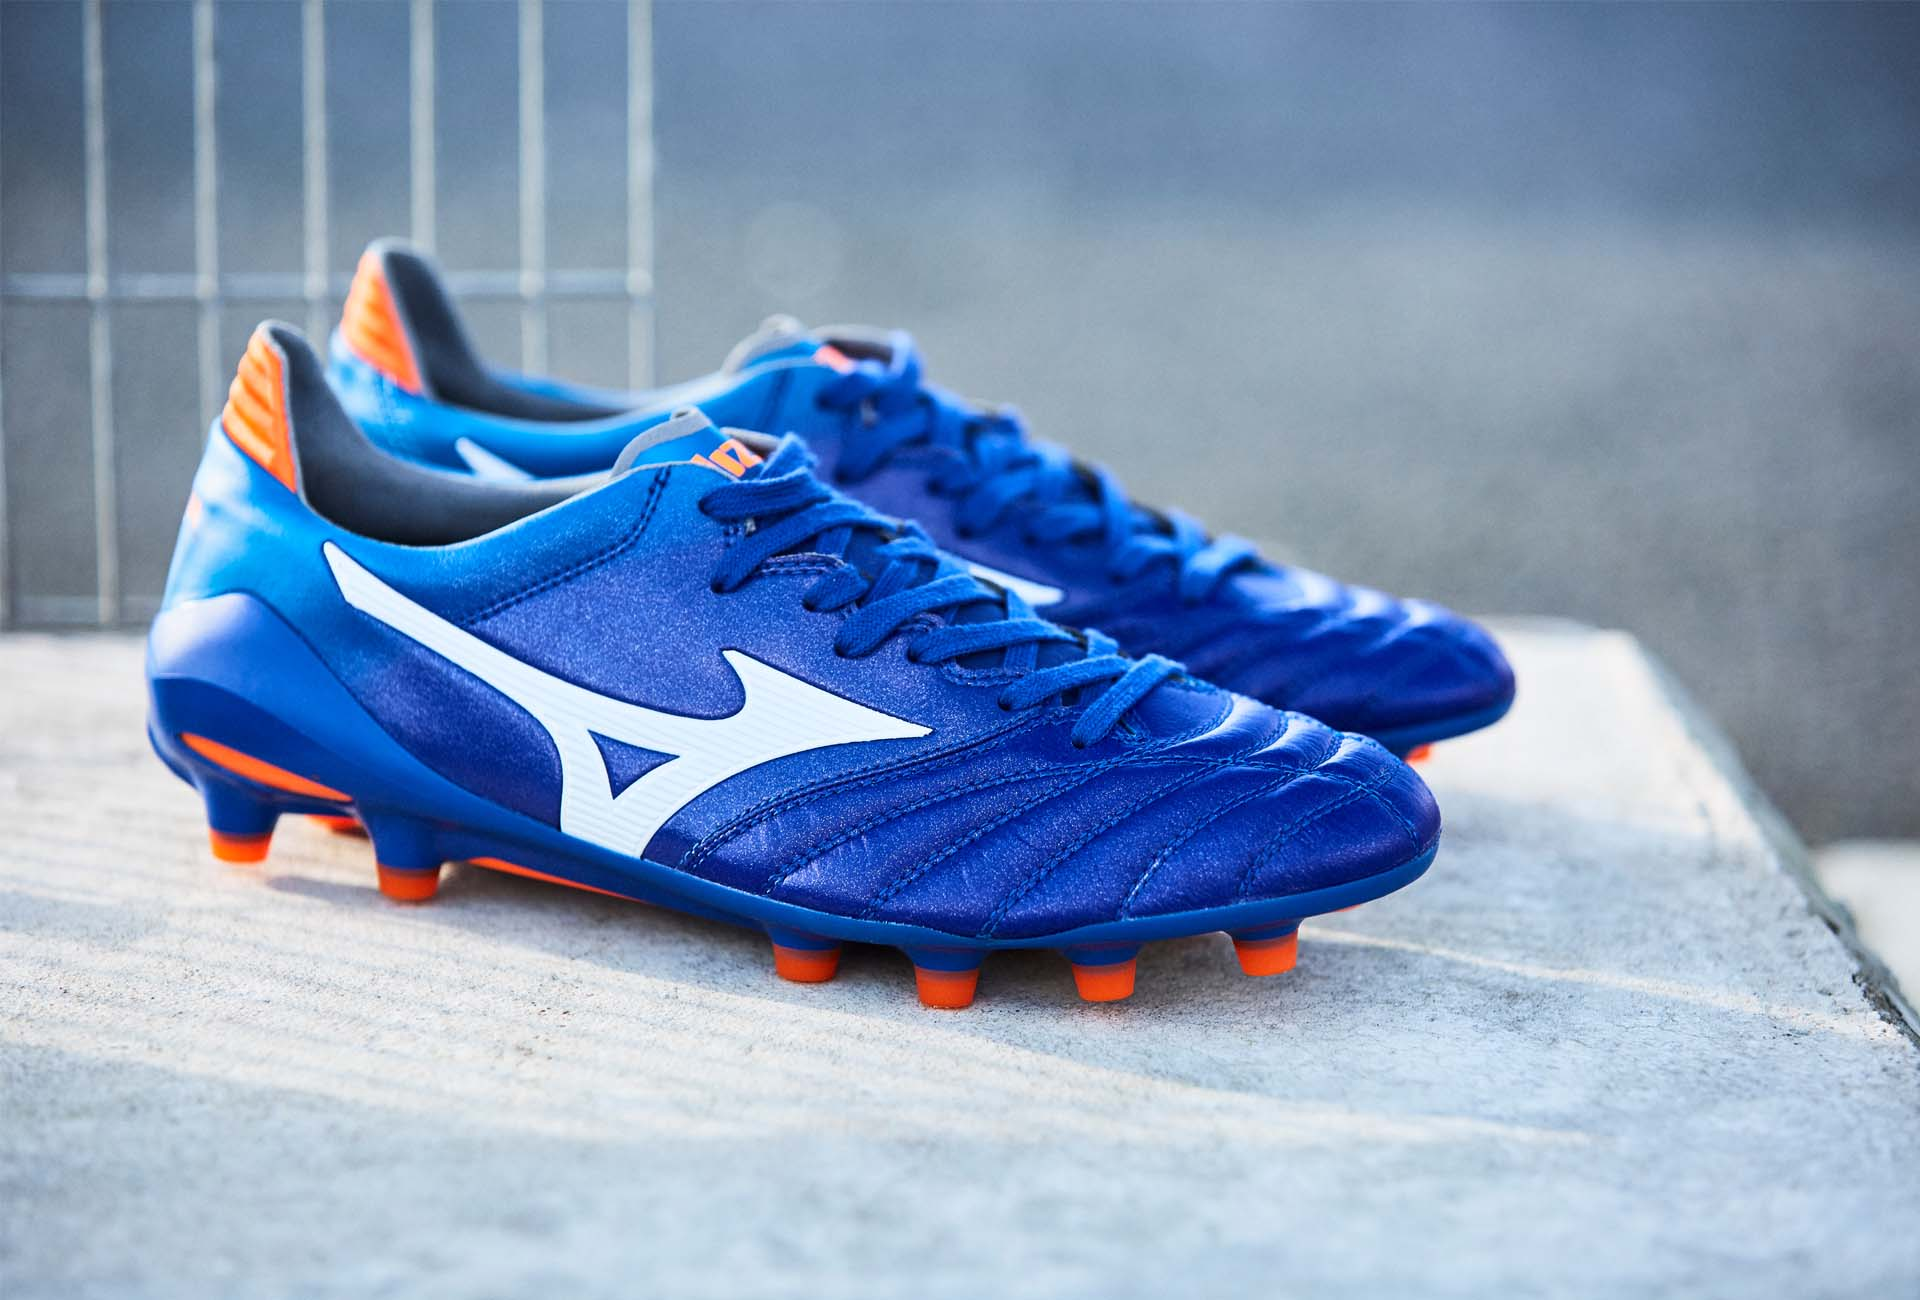 premium selection fb0b1 10ace Mizuno Launch The Morelia Neo II